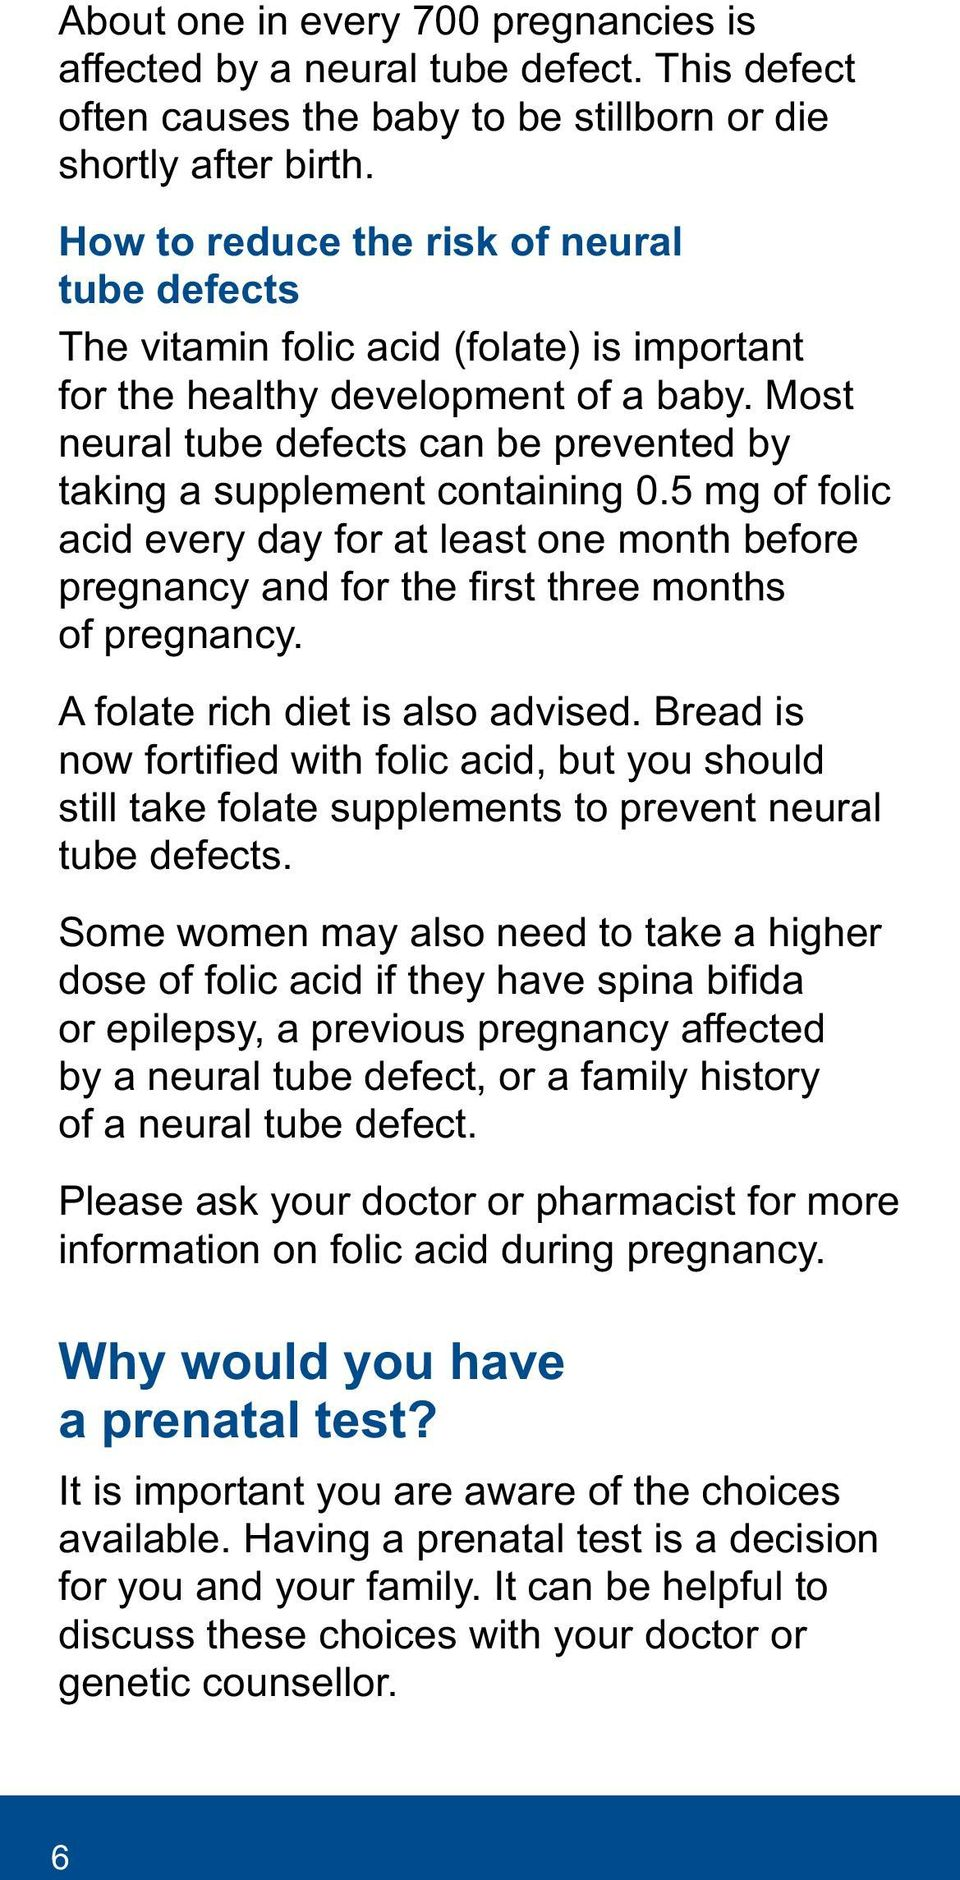 Most neural tube defects can be prevented by taking a supplement containing 0.5 mg of folic acid every day for at least one month before pregnancy and for the first three months of pregnancy.